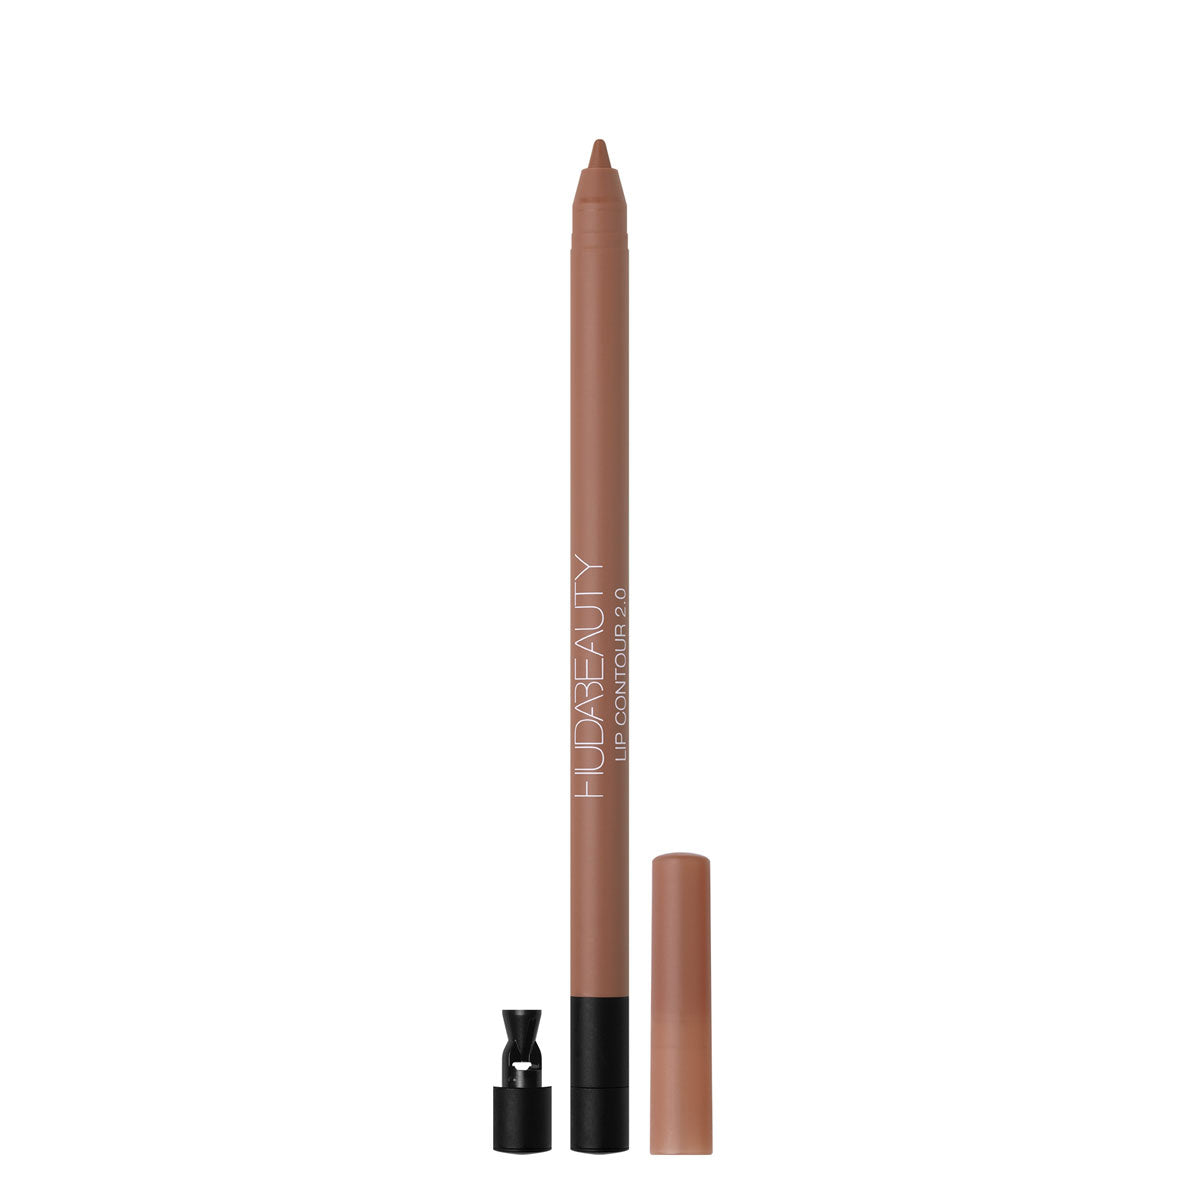 Huda Beauty Lip Contour 2.0 0.5g